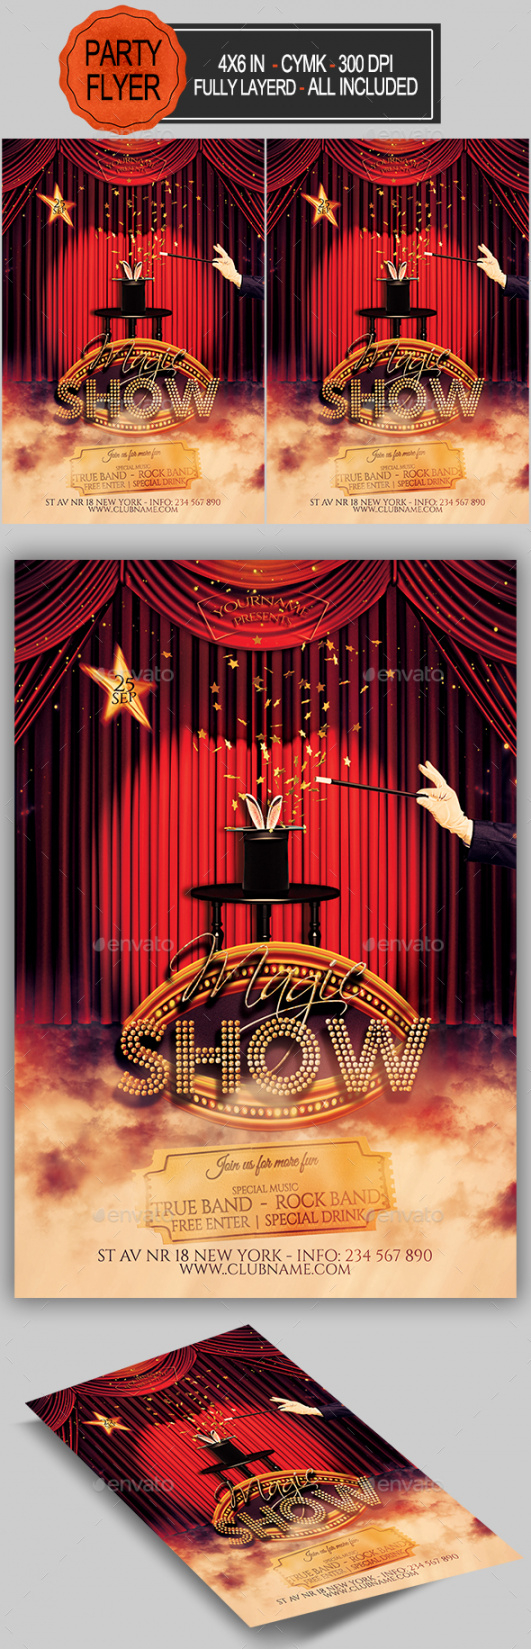 free magic show stationery and design templates from graphicriver magic show flyer template doc